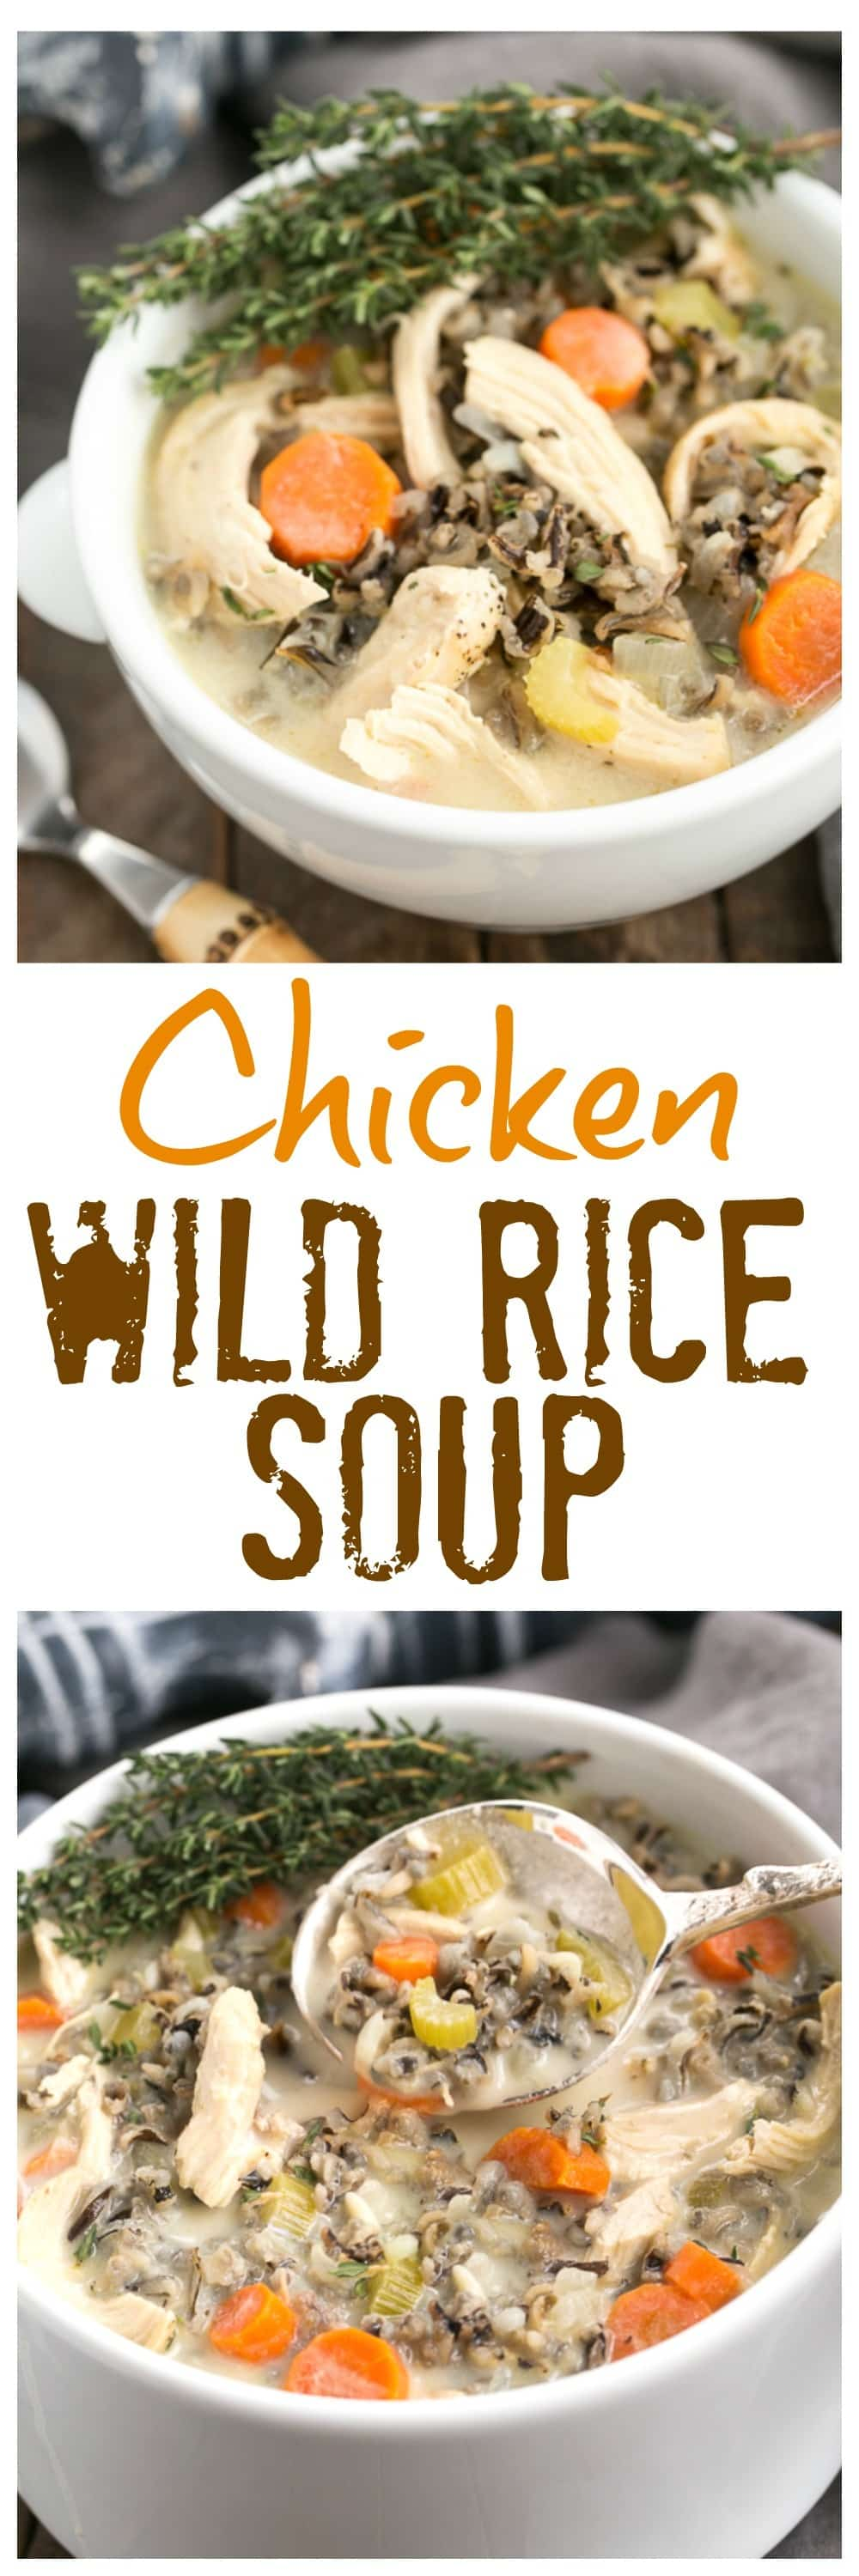 Chicken and Wild Rice Soup photo collage